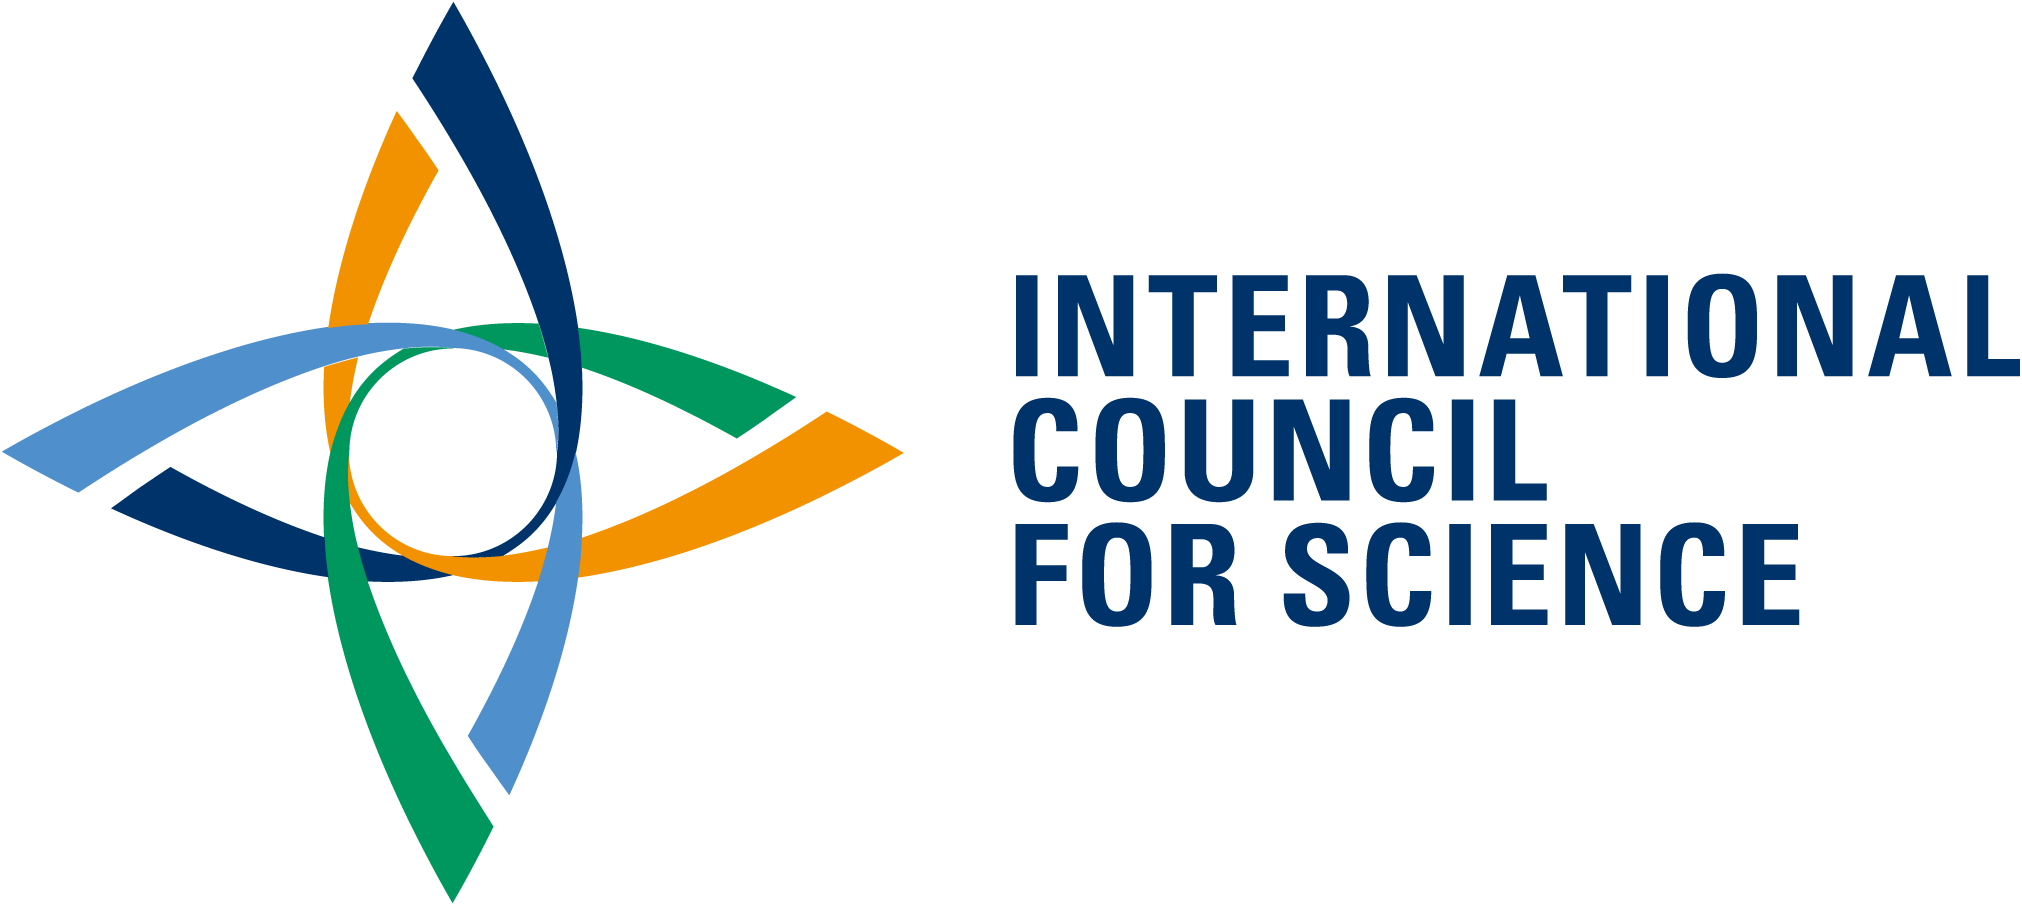 Founding General Assembly International Science Council (ICSU/ISSC)